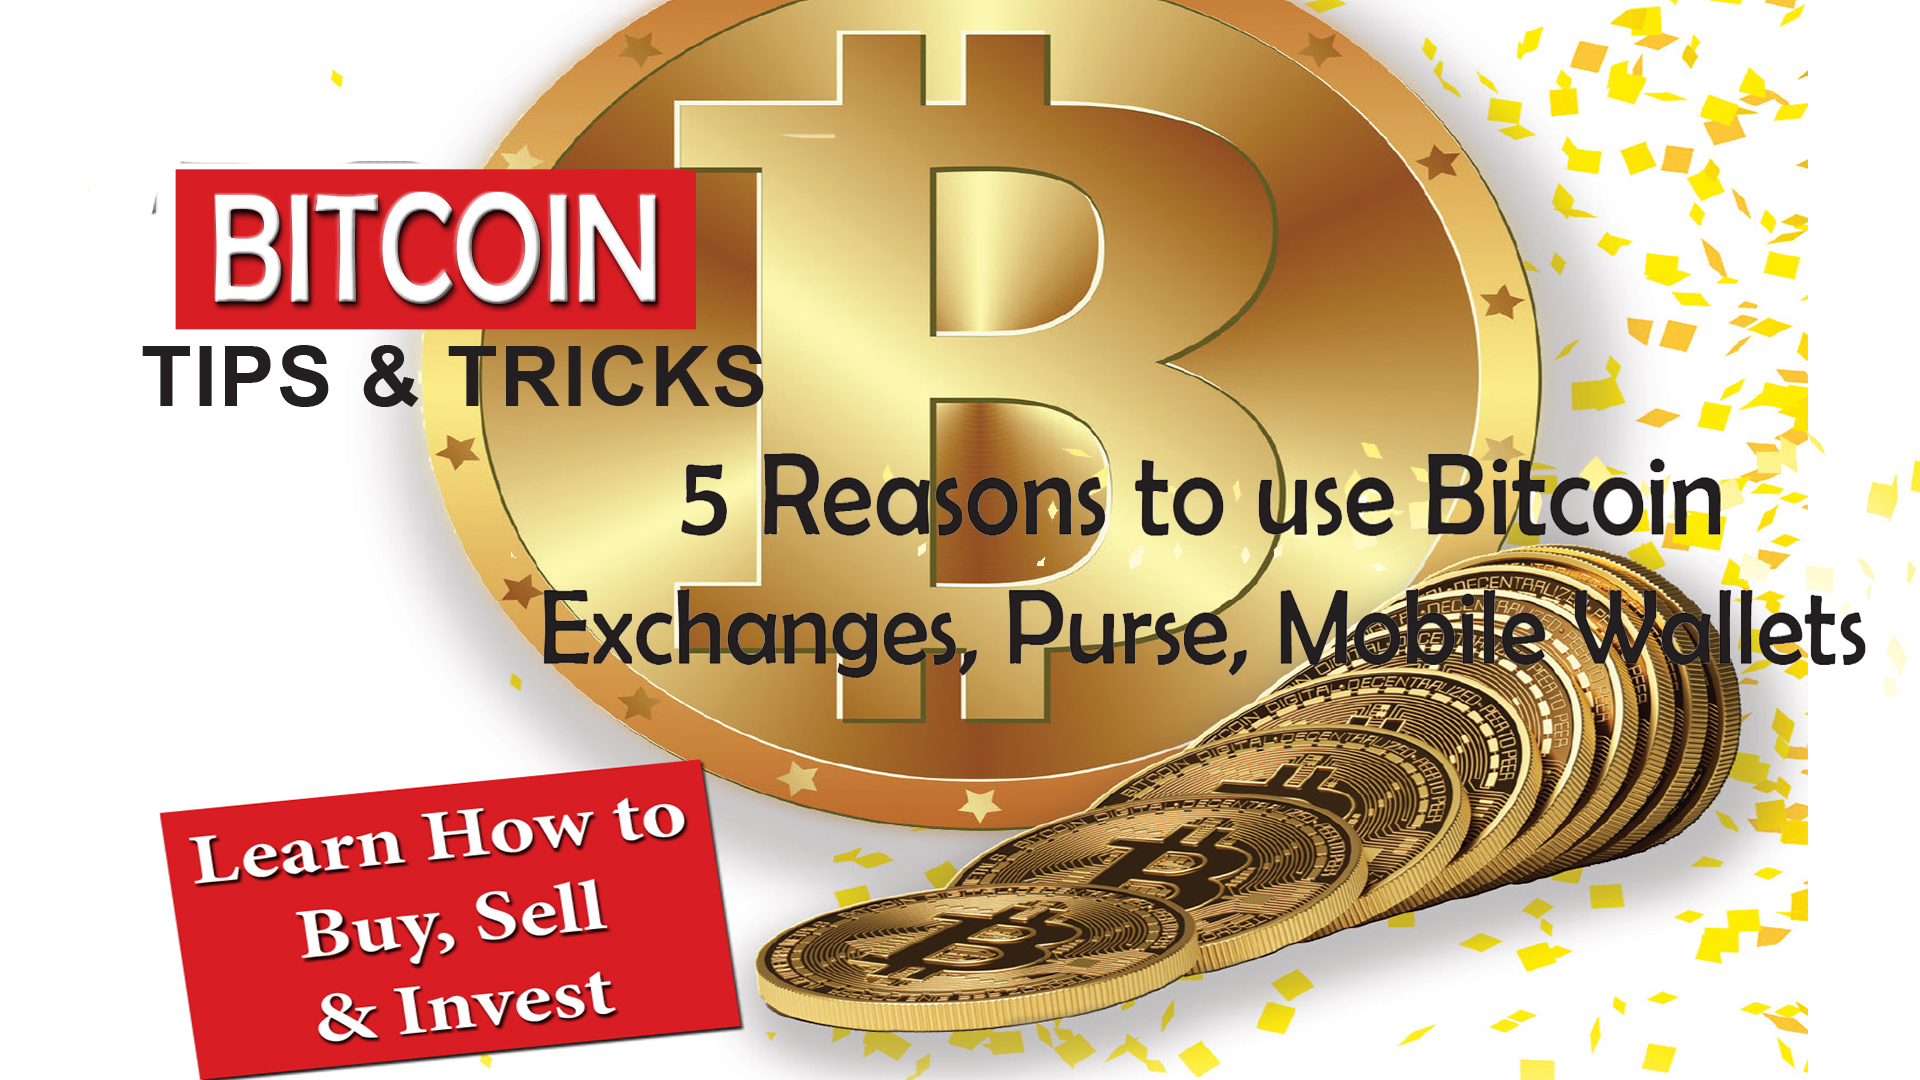 Bitcoin Tips & Tricks - Learn How To Buy, Sell & Invest